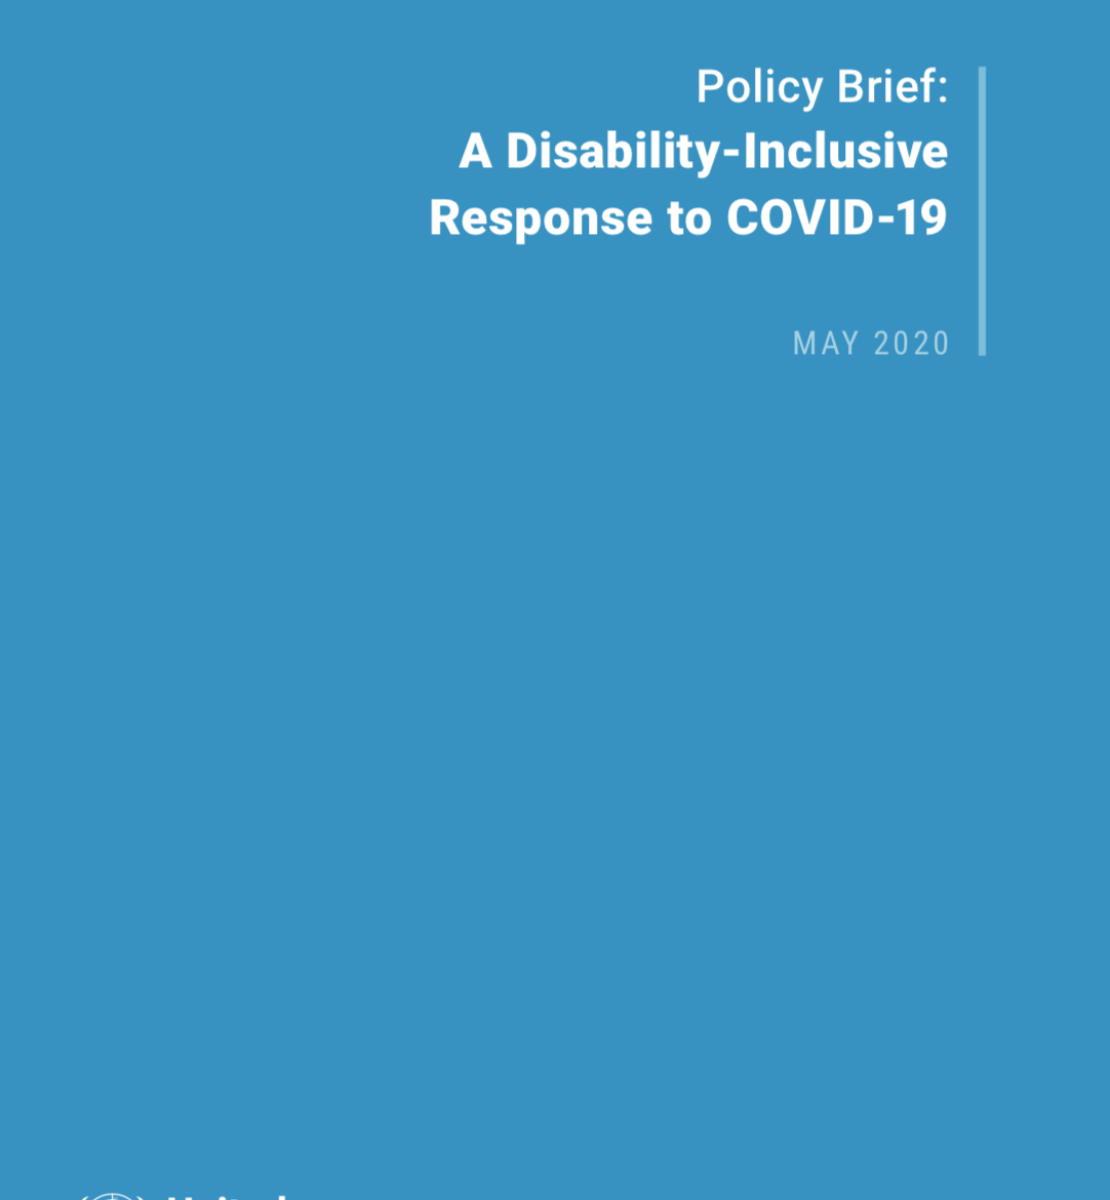 """Cover shows the title """"Policy Brief: A Disability-Inclusive Response to COVID-19"""" against a solid blue background with the UN emblem on the lower left side."""